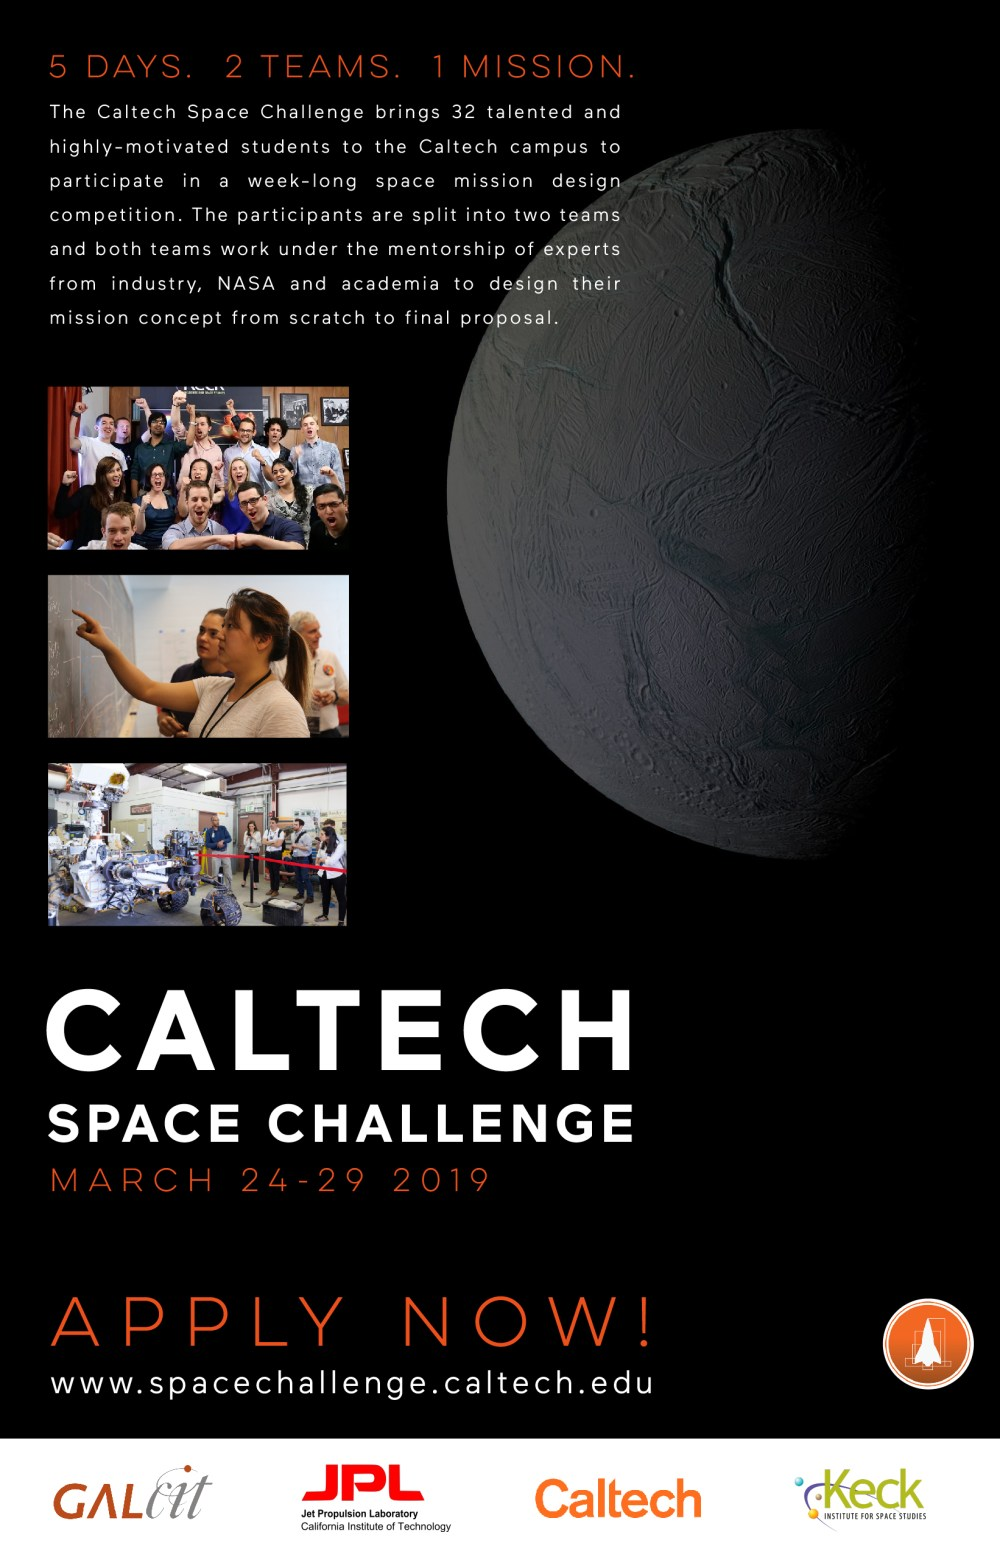 medium resolution of competition encelanders caltech space challenge 2019